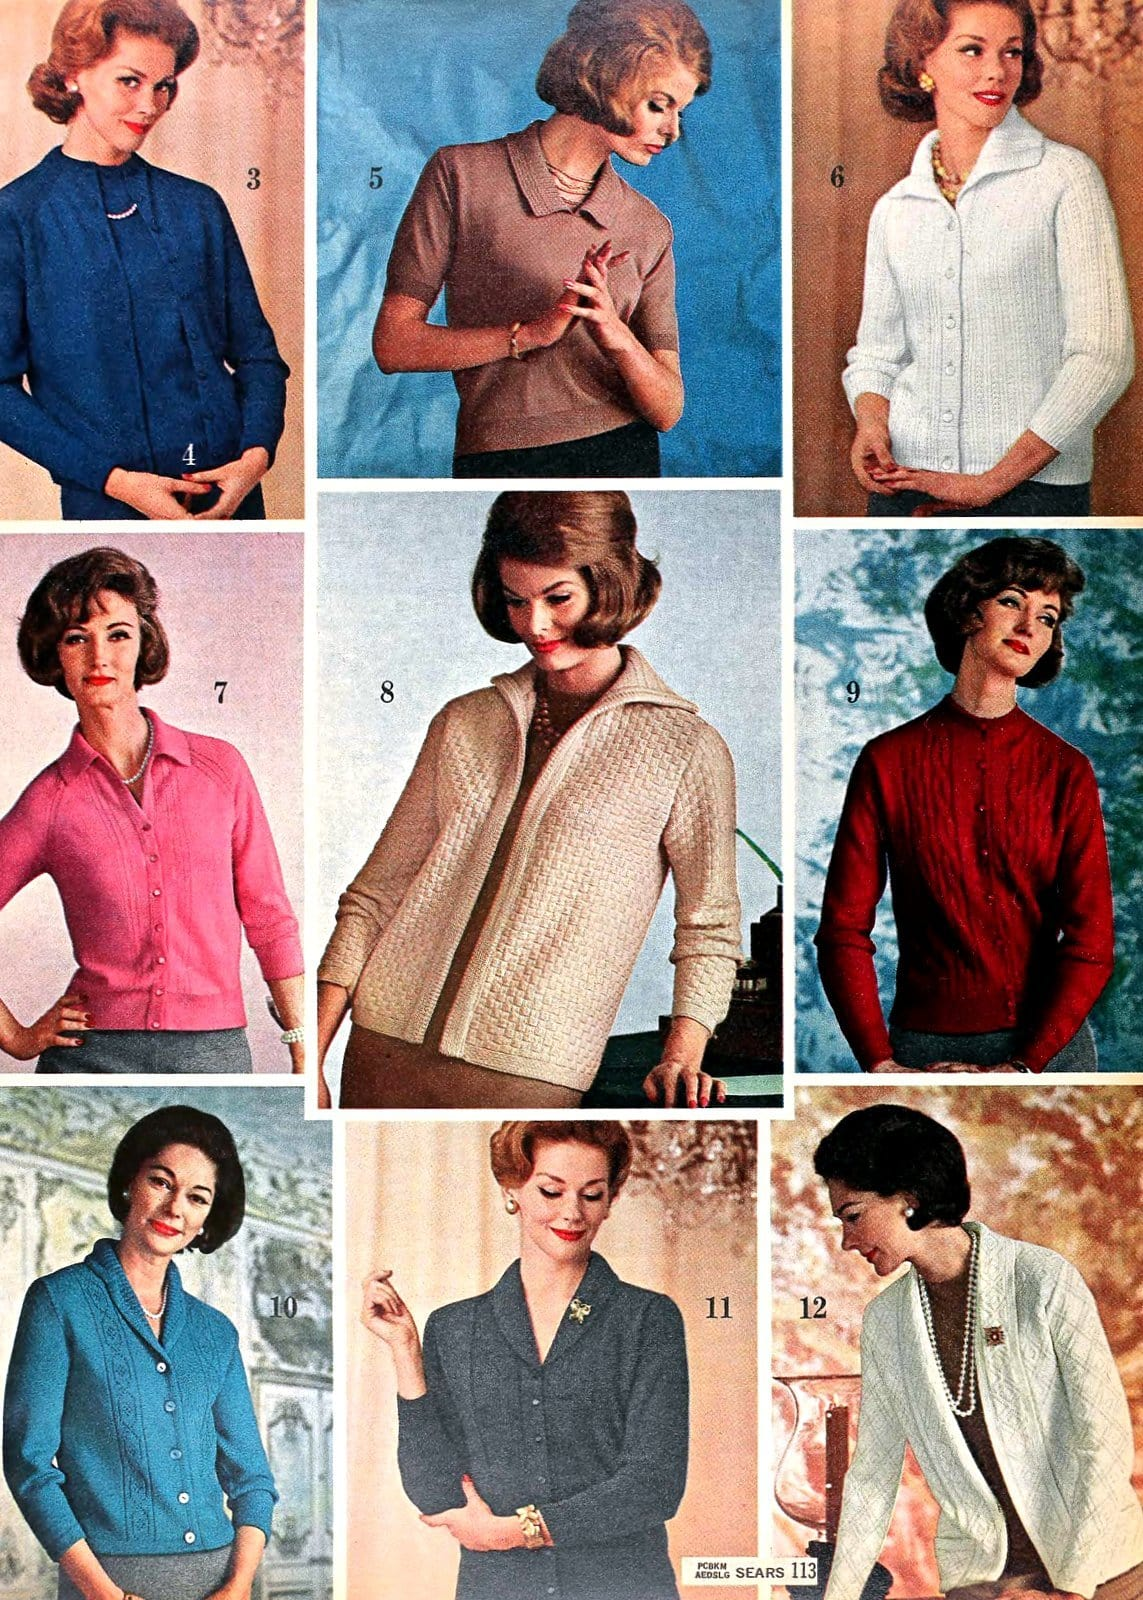 Sixties sweater styles from 1962 (1)